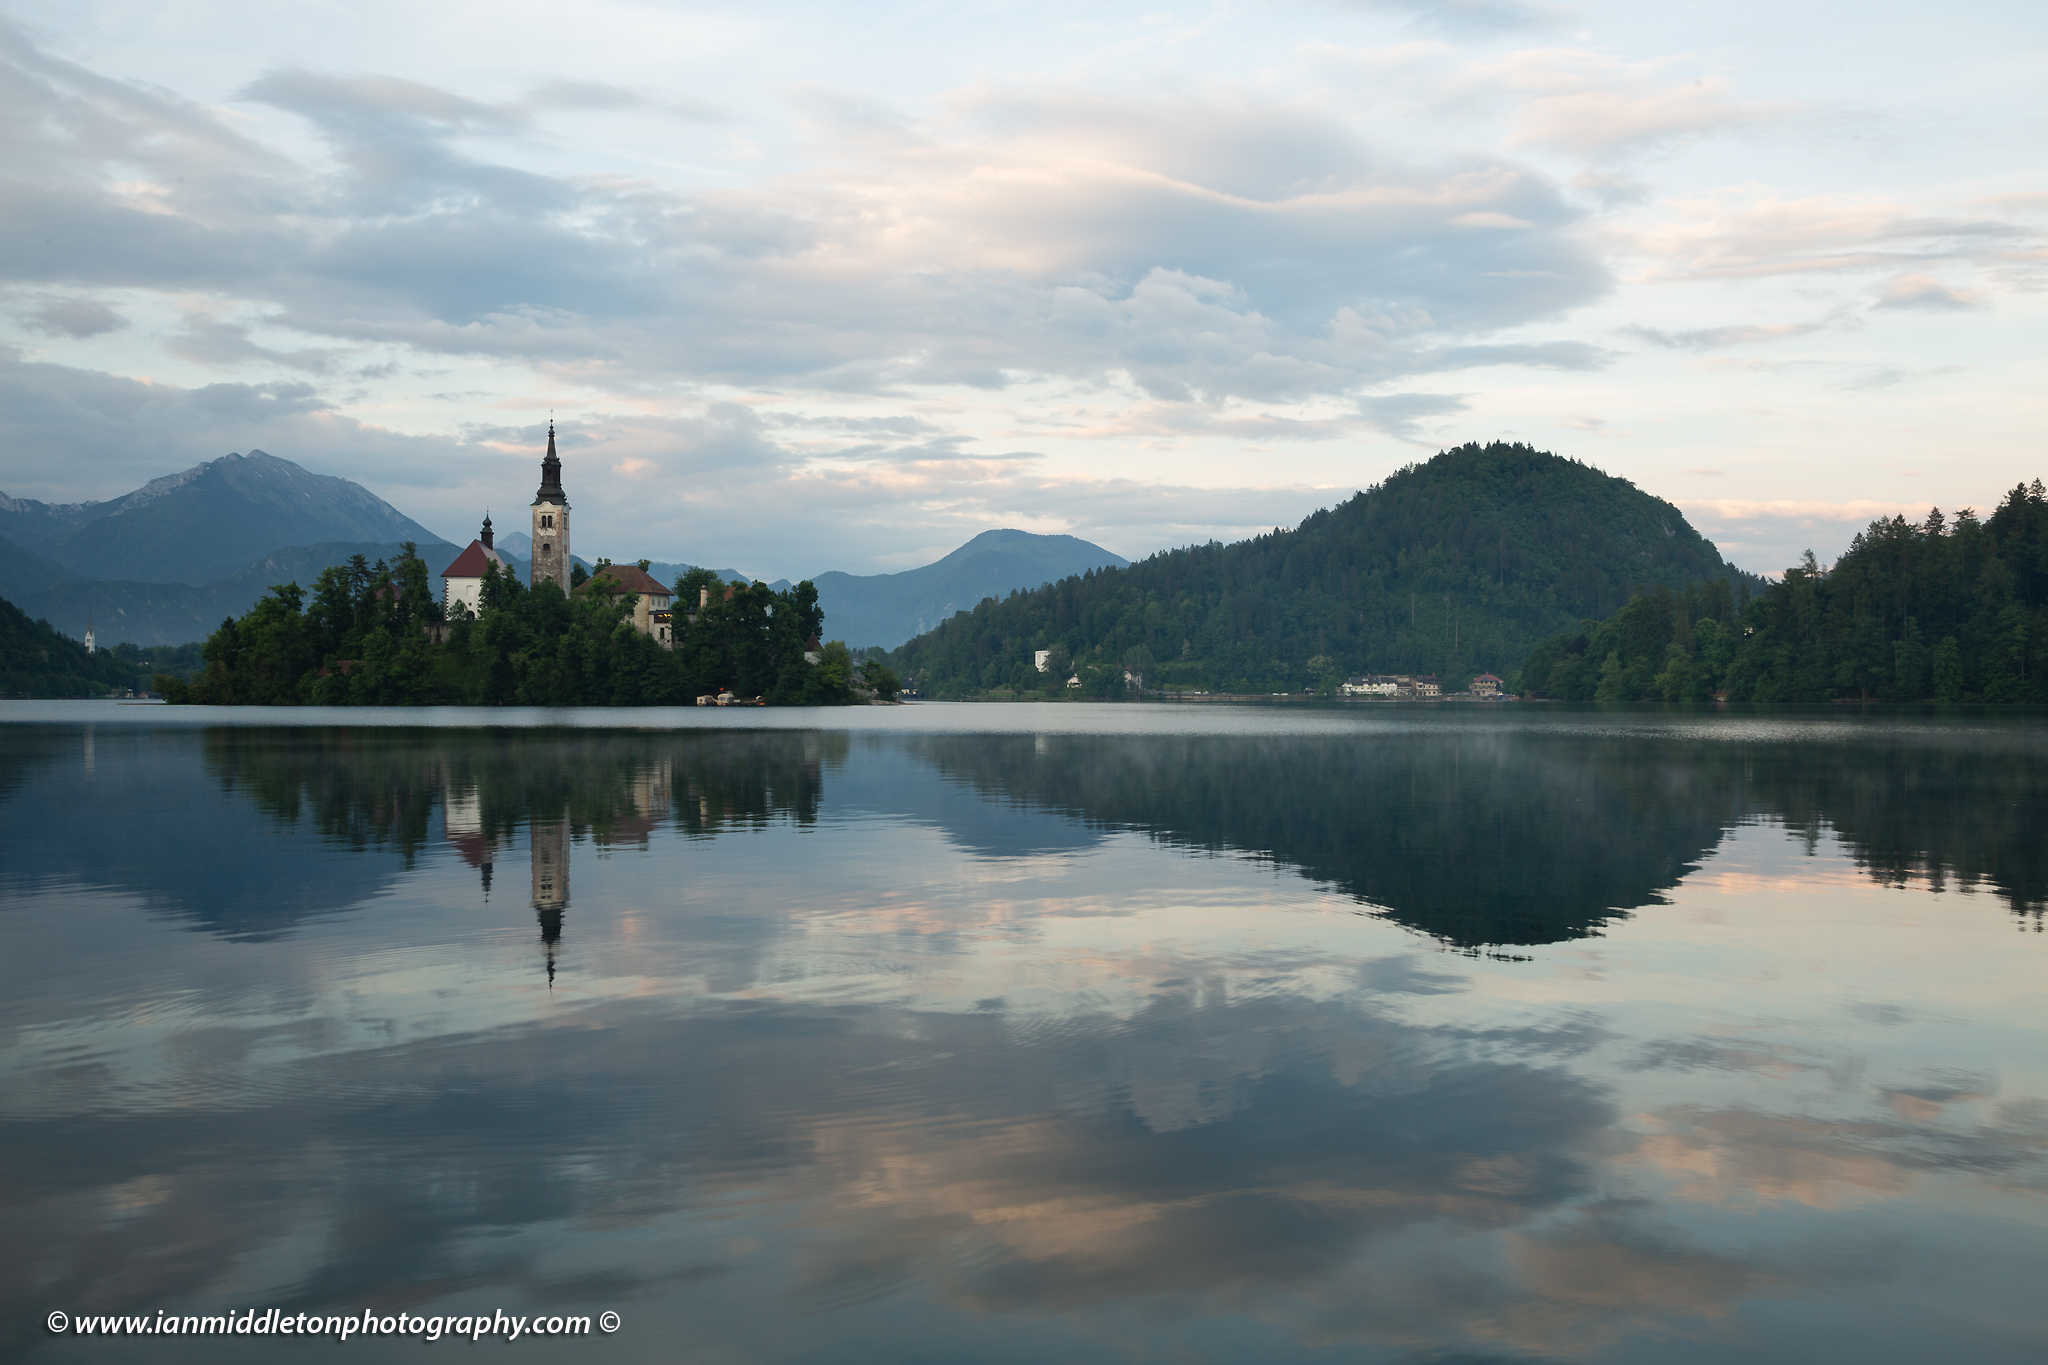 Normal exposure of this view across the beautiful Lake Bled, island church at sunset with the beautiful Karavank mountains in the background, Slovenia. Lake Bled is Slovenia's most popular tourist destination and the Karawanke mountains form the border between Slovenia and Austria.